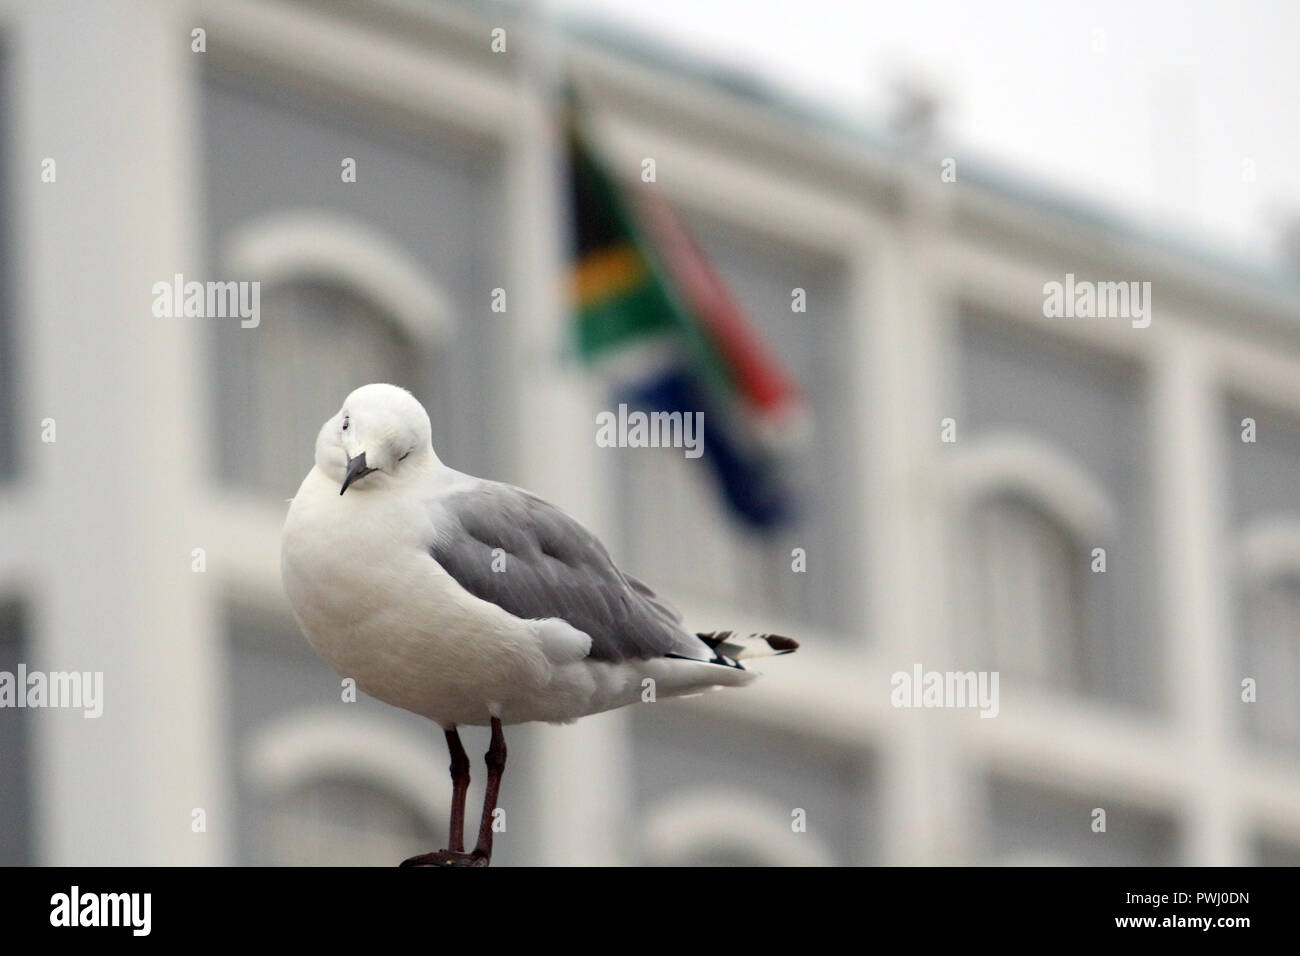 Seagull looking to the camera, taken from Cape Town (South Africa). - Stock Image